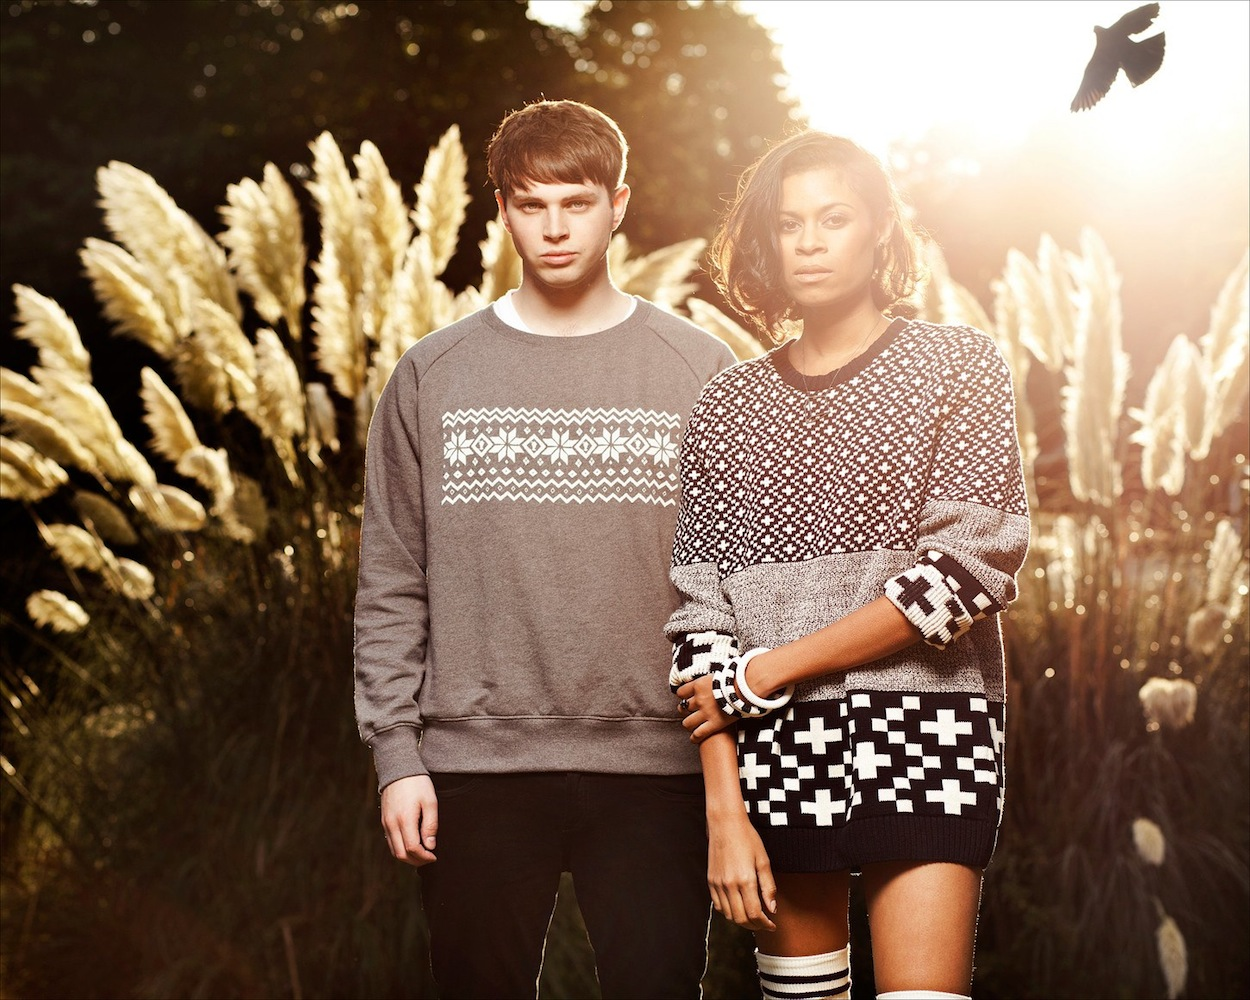 Download: AlunaGeorge - Thinkin Bout You (Frank Ocean Cover)